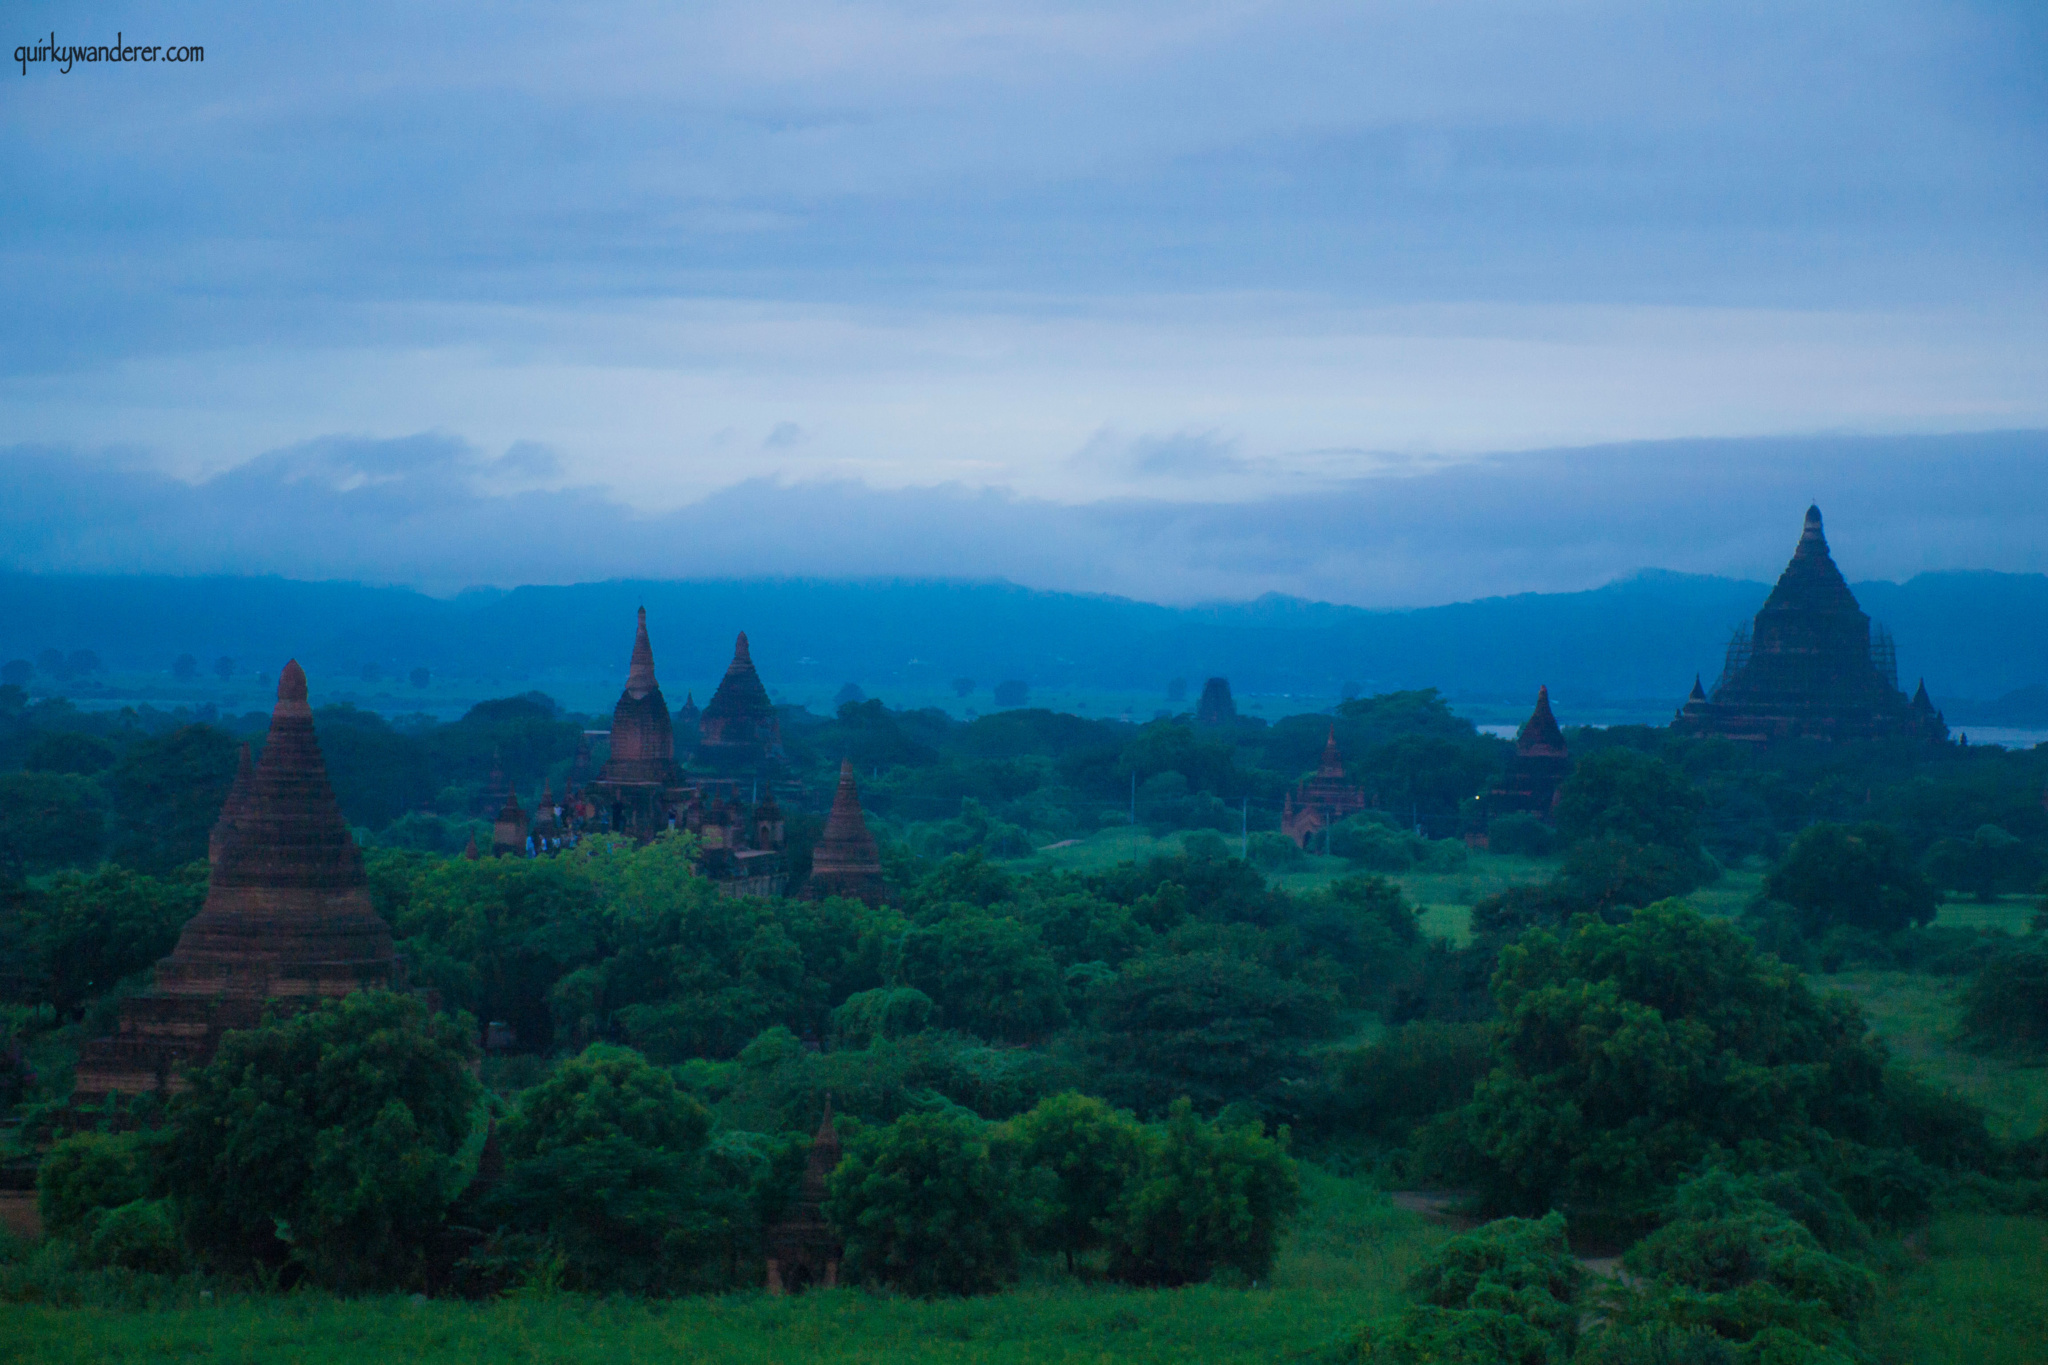 bagan-pagodas-in-blue-mist